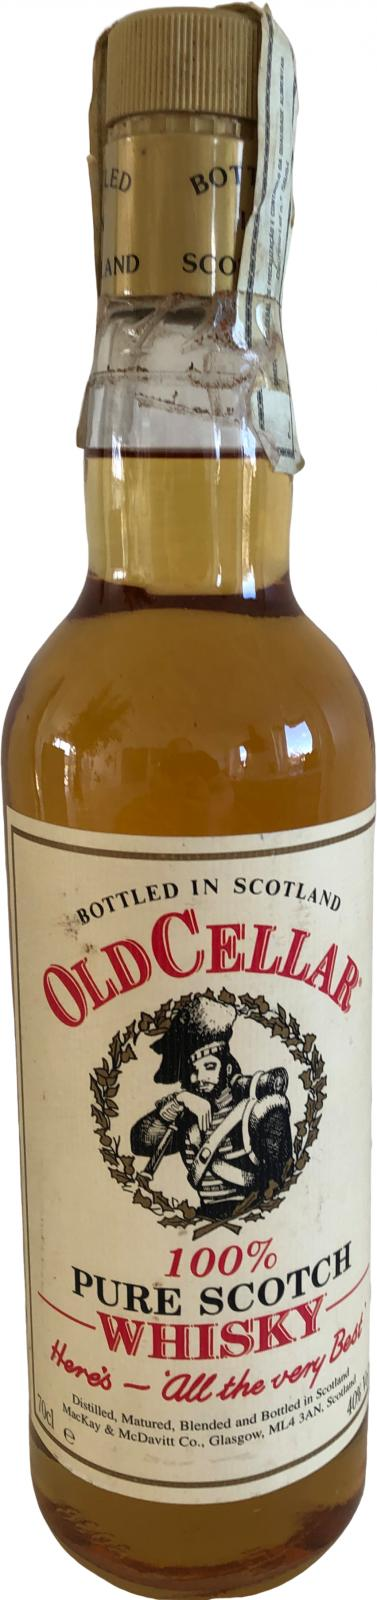 Old Cellar 100% Pure Scotch Whisky